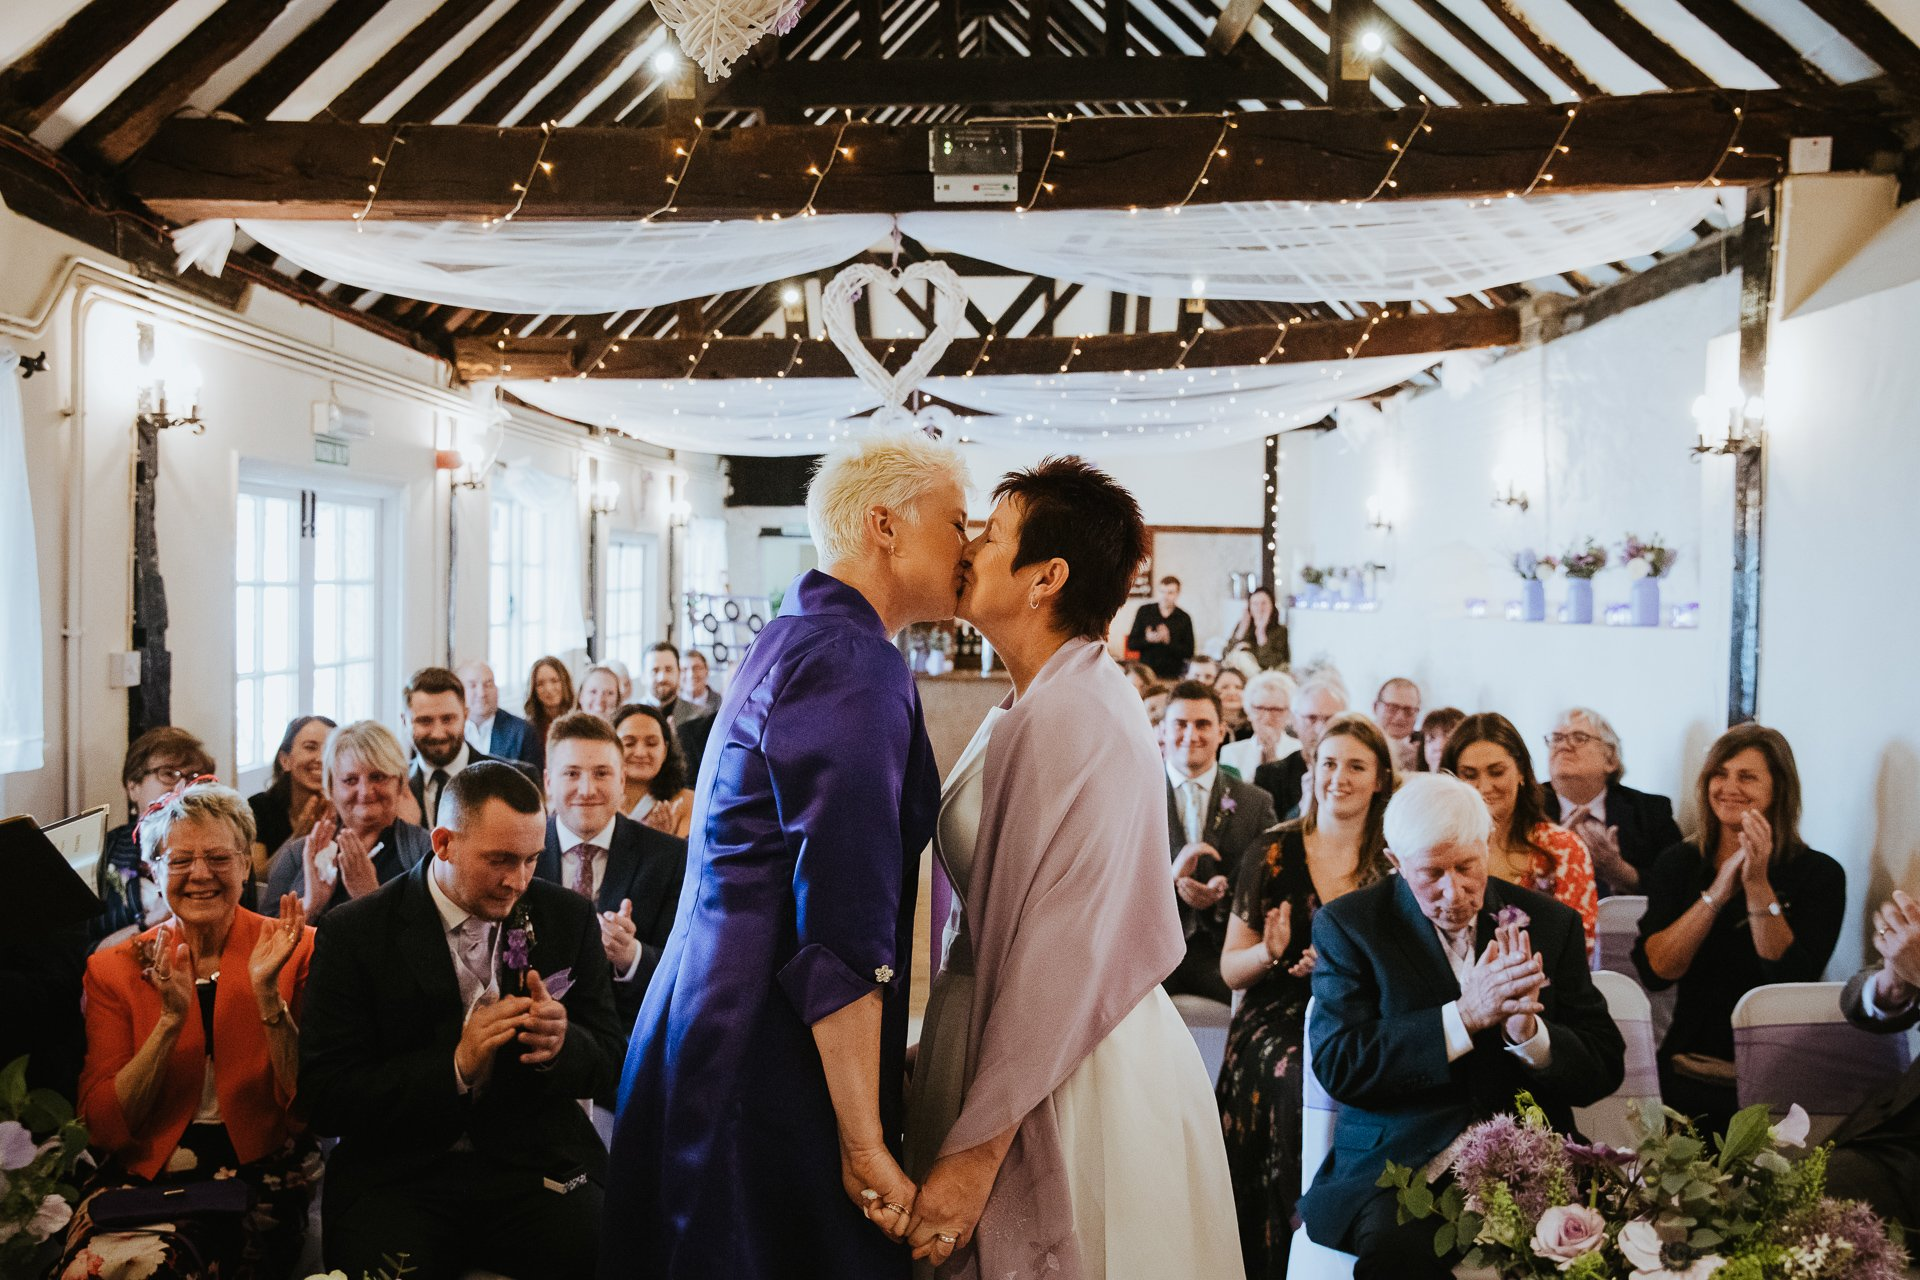 Two Brides during their first kiss at Weddings at The Bull Hotel Kent